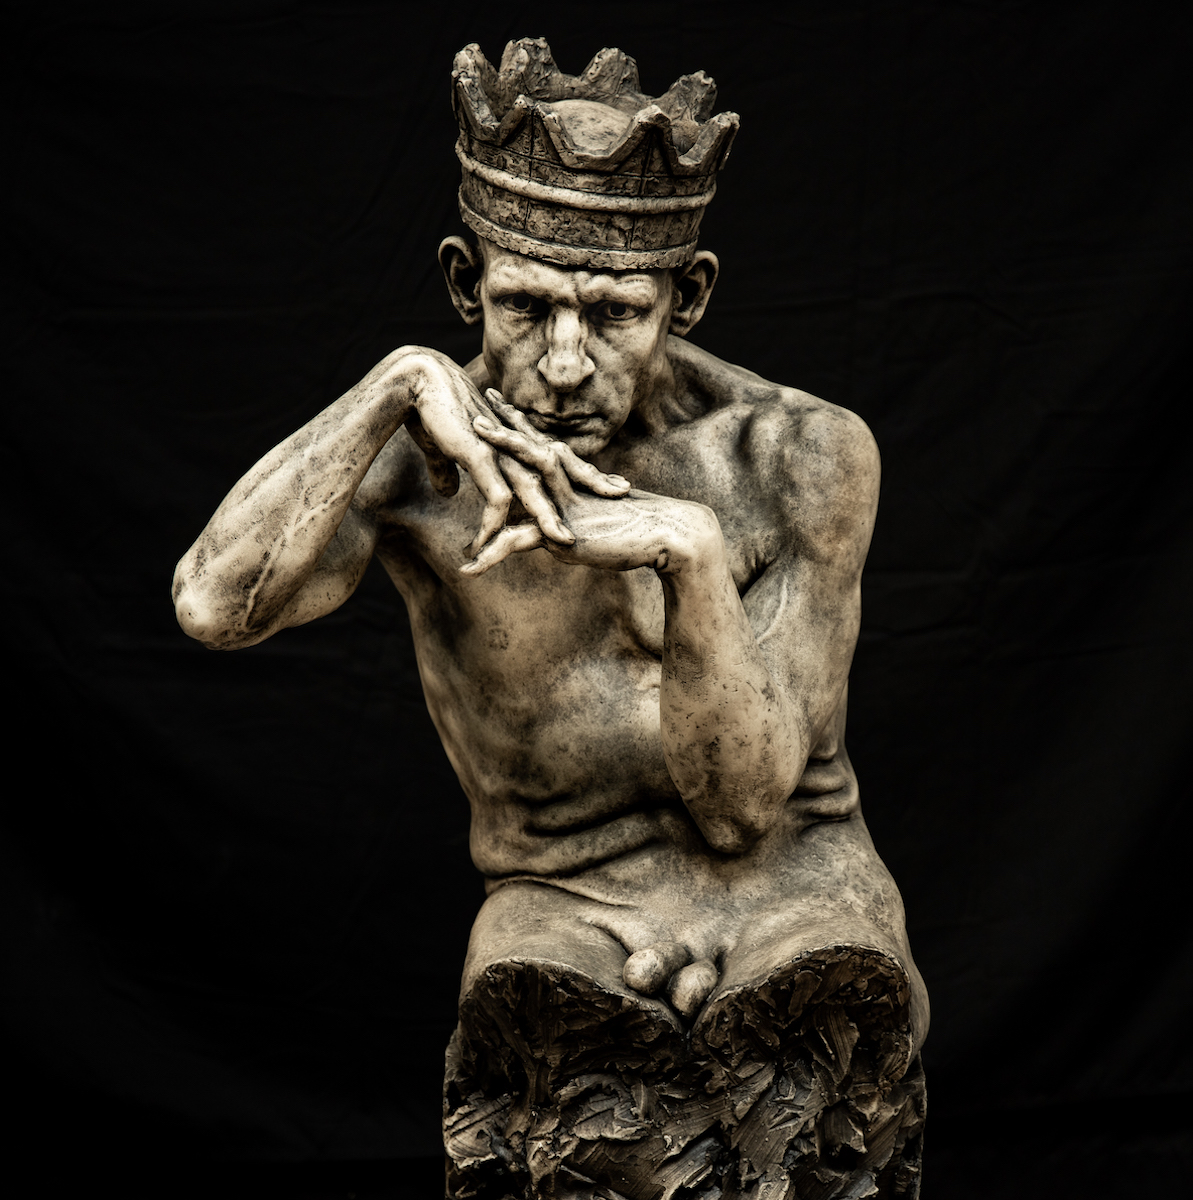 """EIRIK ARNESEN - """"The King of the Rusted Crown"""", aqua resin with hand applied oil patina3/4 life scale sculpture, issue 1 of 20$8,000Bronze is available by special request$38,000"""